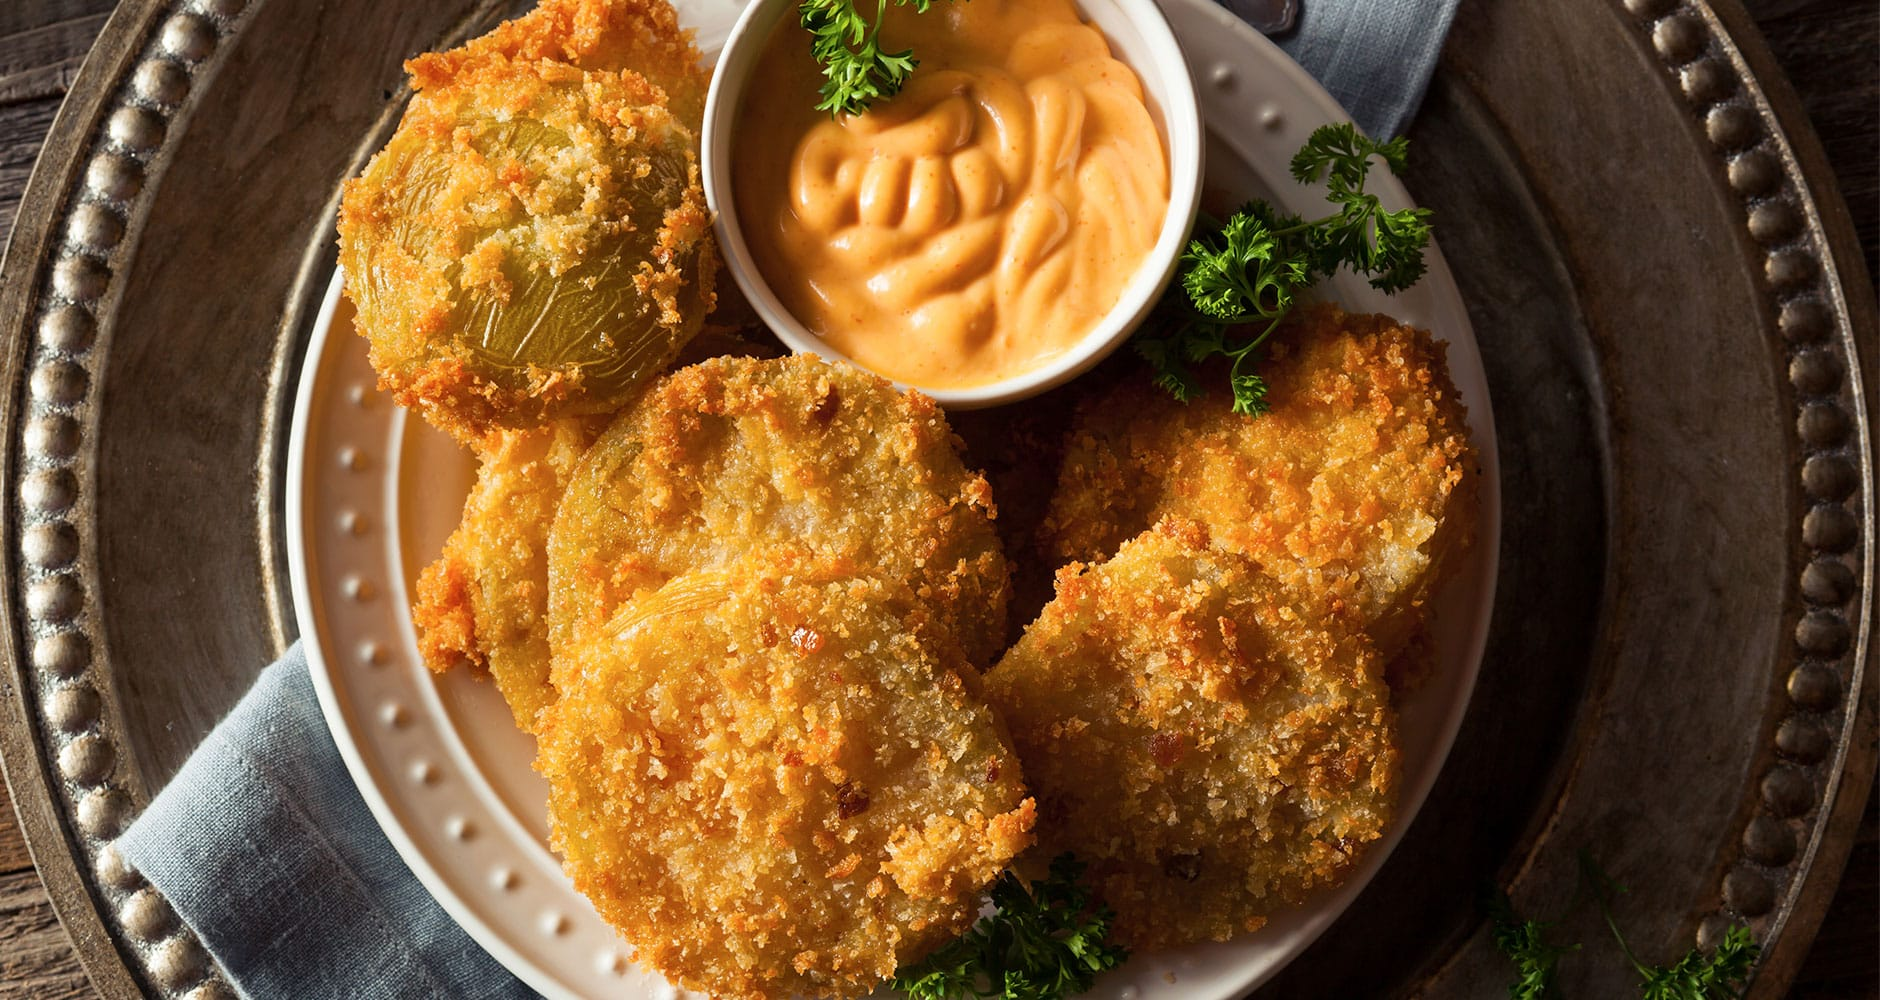 Fried Green Tomatoes With Sriracha Dipping Sauceimage preview